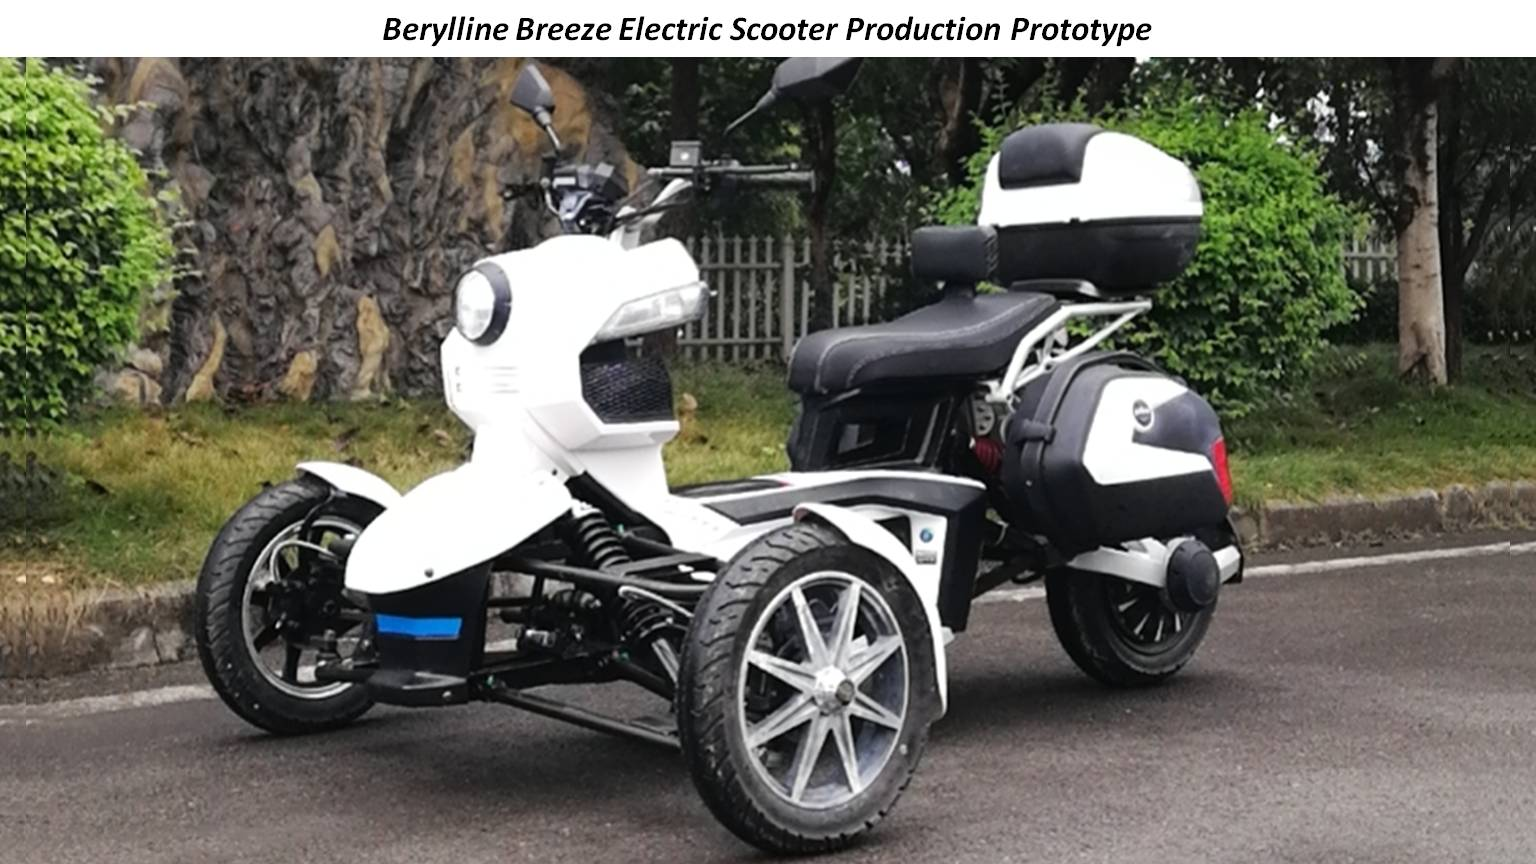 Berylline Breeze Electric Scooter Production Prototype